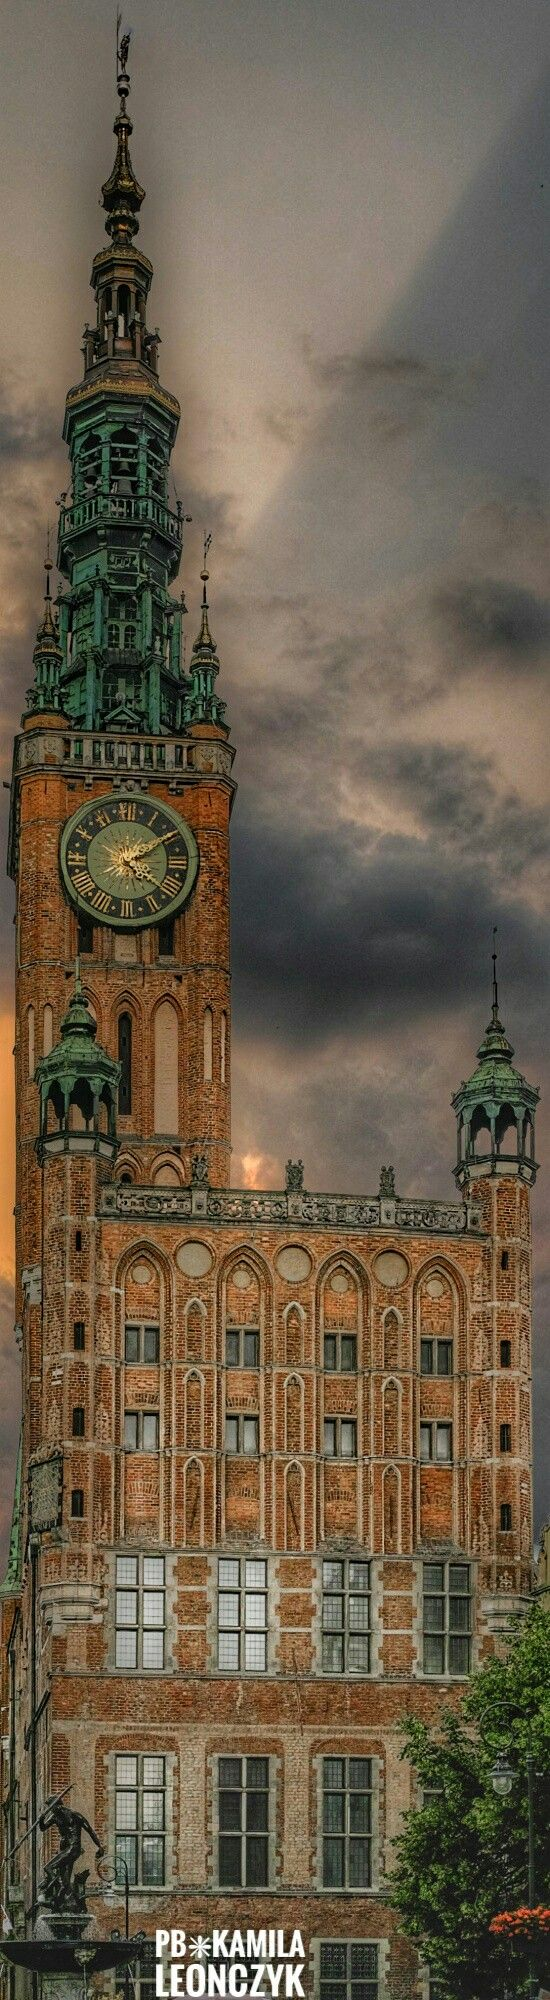 Gdańsk Main Town Hallis a historicRatuszlocated in theGdańskMain Cityborough ofŚródmieście. It is one of the finest examples of theGothic-Renaissancehistoric buildings in the city, built at the intersection of theLong LaneandLong Market, in the most popular part of Gdańsk.The Main Town Hall in Gdańsk houses the History Museum of the City of Gdańsk